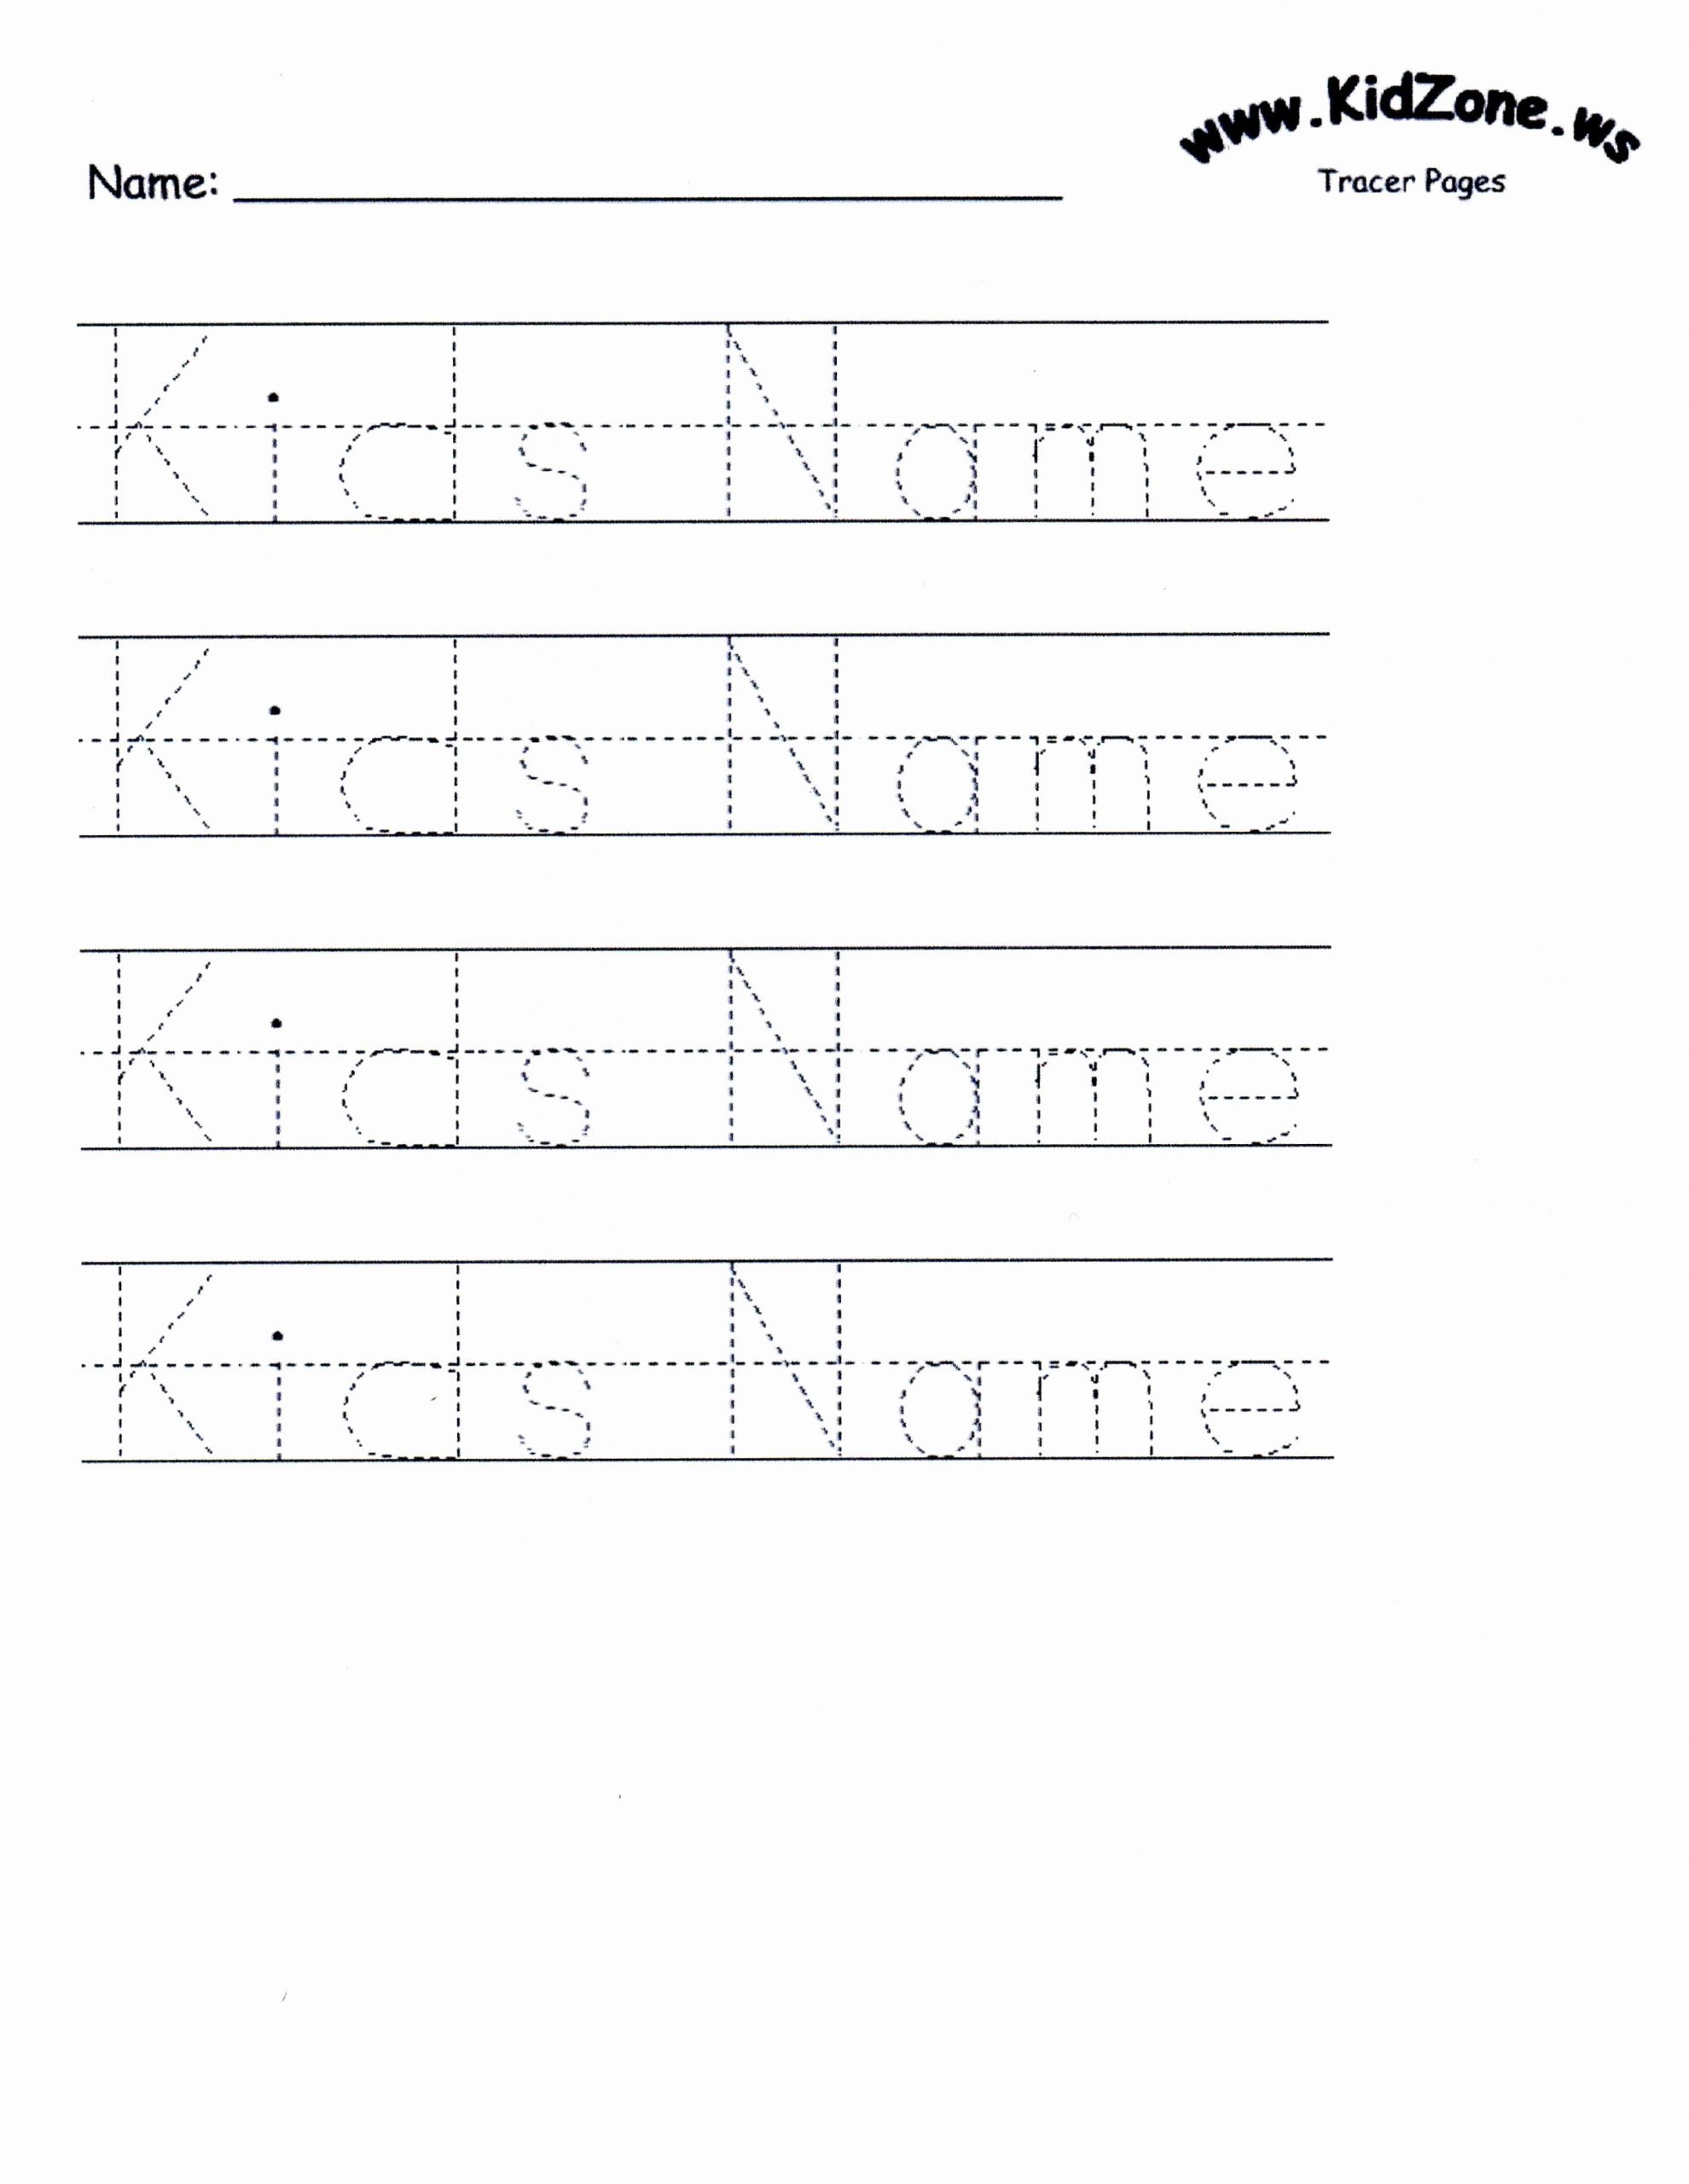 Handwriting Name Worksheets for Preschoolers top Custom Tracer Pages